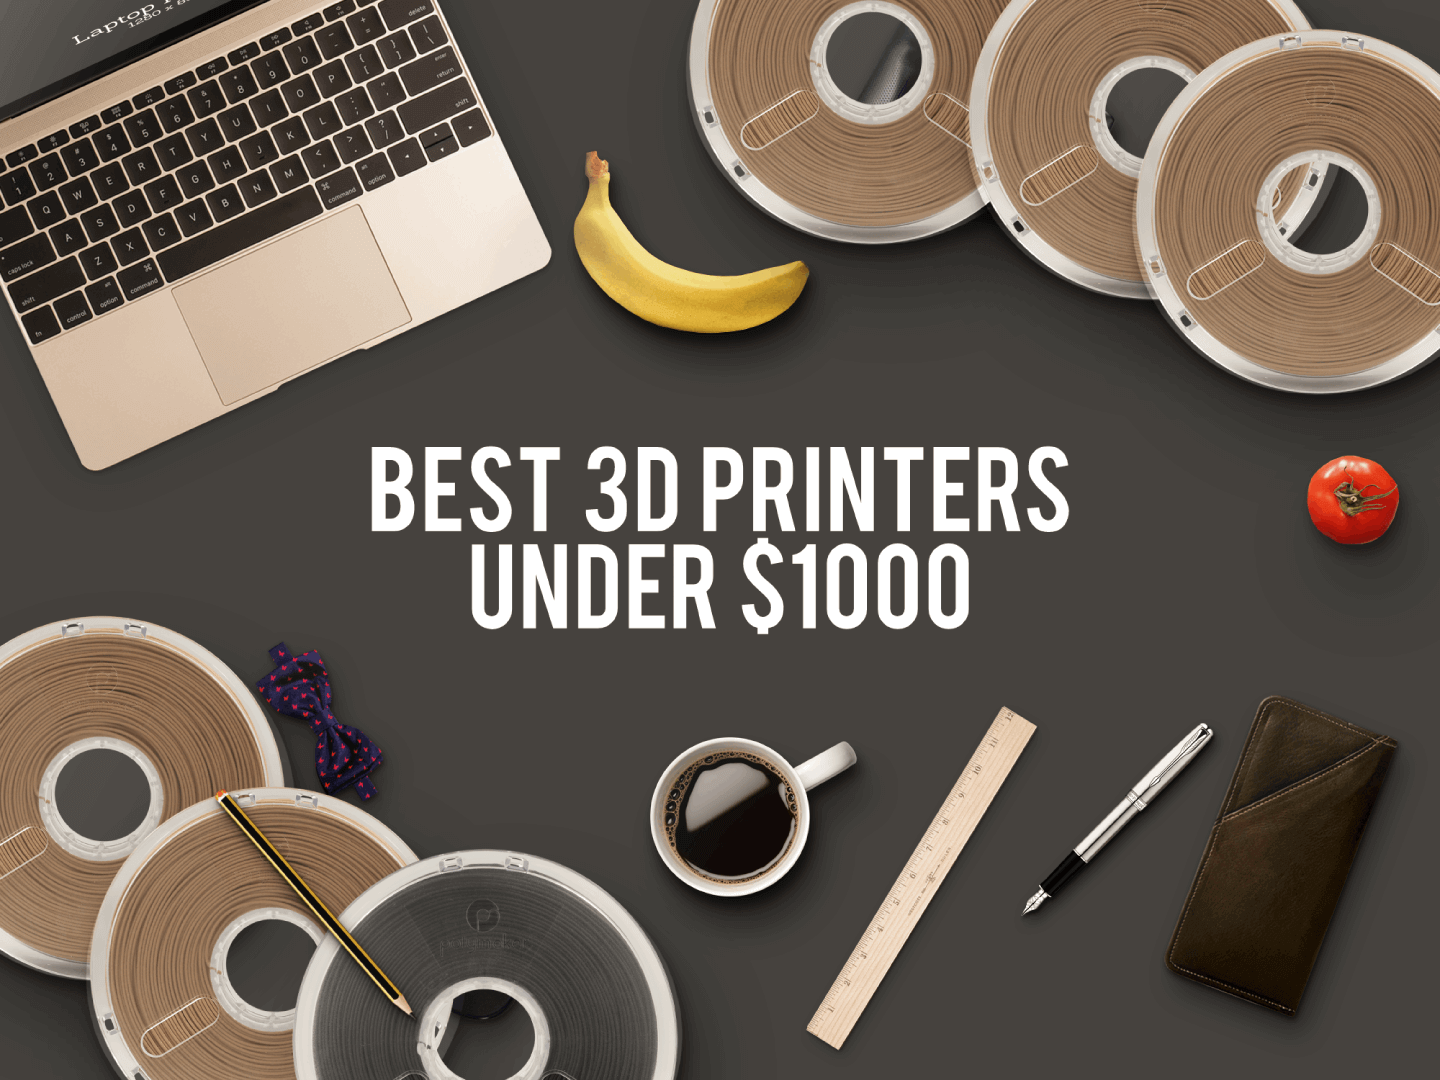 The Best 3D Printers Under $1000: Our Top Picks